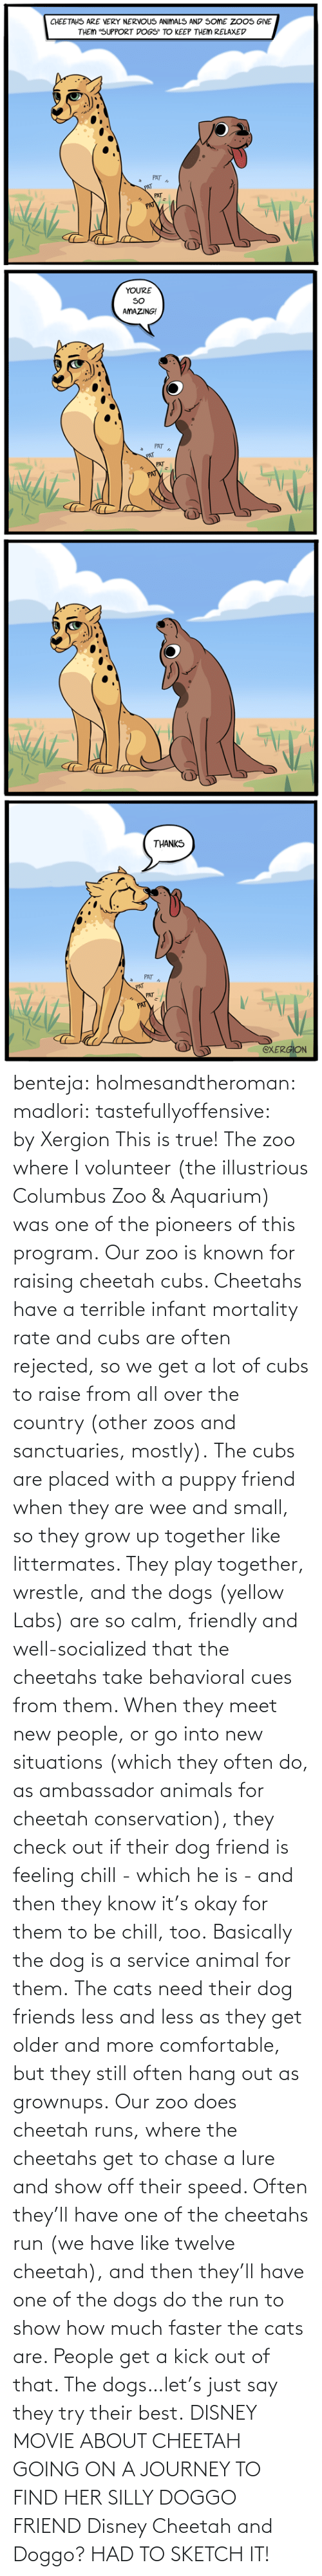 We Have: benteja:  holmesandtheroman:  madlori:  tastefullyoffensive: by Xergion This is true! The zoo where I volunteer (the illustrious Columbus Zoo & Aquarium) was one of the pioneers of this program. Our zoo is known for raising cheetah cubs. Cheetahs have a terrible infant mortality rate and cubs are often rejected, so we get a lot of cubs to raise from all over the country (other zoos and sanctuaries, mostly). The cubs are placed with a puppy friend when they are wee and small, so they grow up together like littermates. They play together, wrestle, and the dogs (yellow Labs) are so calm, friendly and well-socialized that the cheetahs take behavioral cues from them. When they meet new people, or go into new situations (which they often do, as ambassador animals for cheetah conservation), they check out if their dog friend is feeling chill - which he is - and then they know it's okay for them to be chill, too. Basically the dog is a service animal for them. The cats need their dog friends less and less as they get older and more comfortable, but they still often hang out as grownups. Our zoo does cheetah runs, where the cheetahs get to chase a lure and show off their speed. Often they'll have one of the cheetahs run (we have like twelve cheetah), and then they'll have one of the dogs do the run to show how much faster the cats are. People get a kick out of that. The dogs…let's just say they try their best.   DISNEY MOVIE ABOUT CHEETAH GOING ON A JOURNEY TO FIND HER SILLY DOGGO FRIEND  Disney Cheetah and Doggo? HAD TO SKETCH IT!